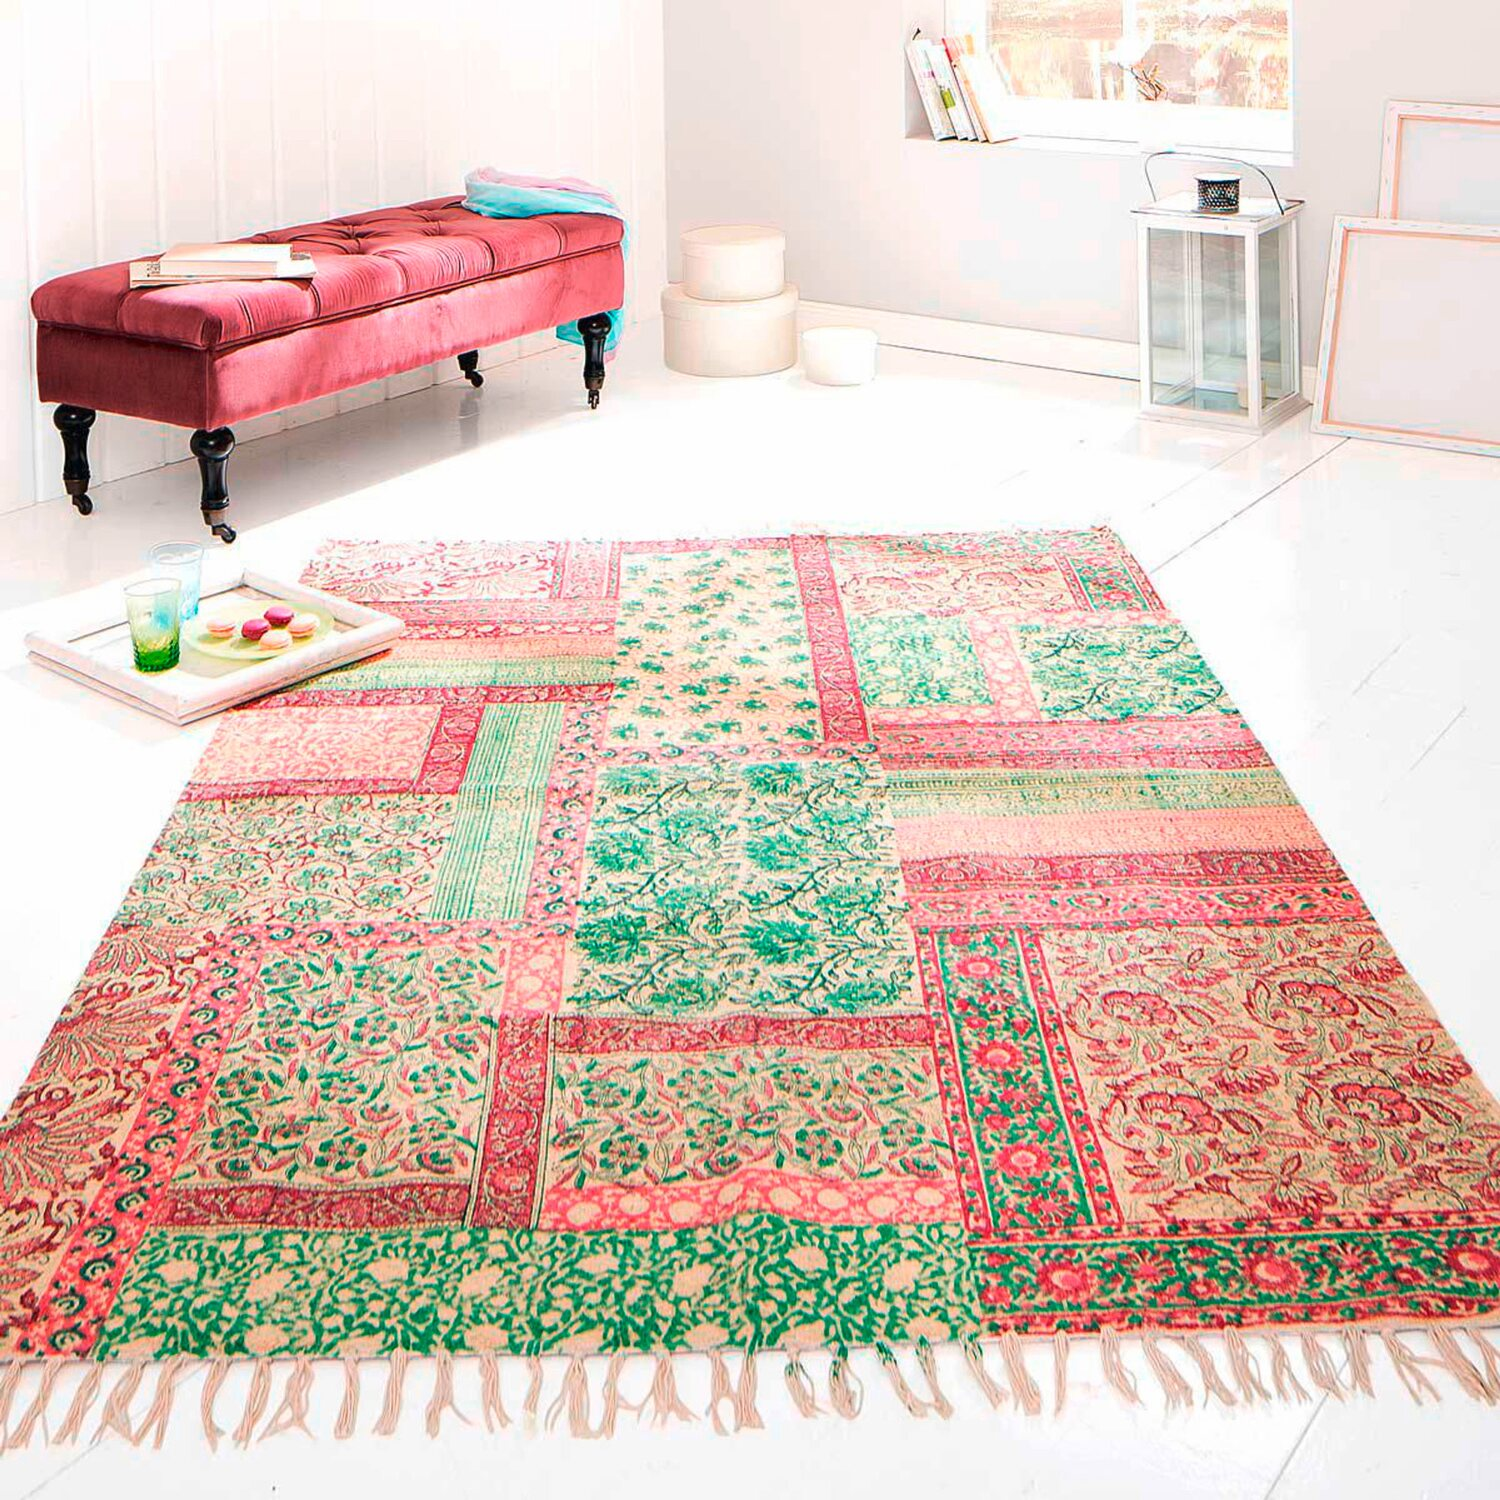 best of home Best of home Teppich Patchwork 170 cm x 240 cm